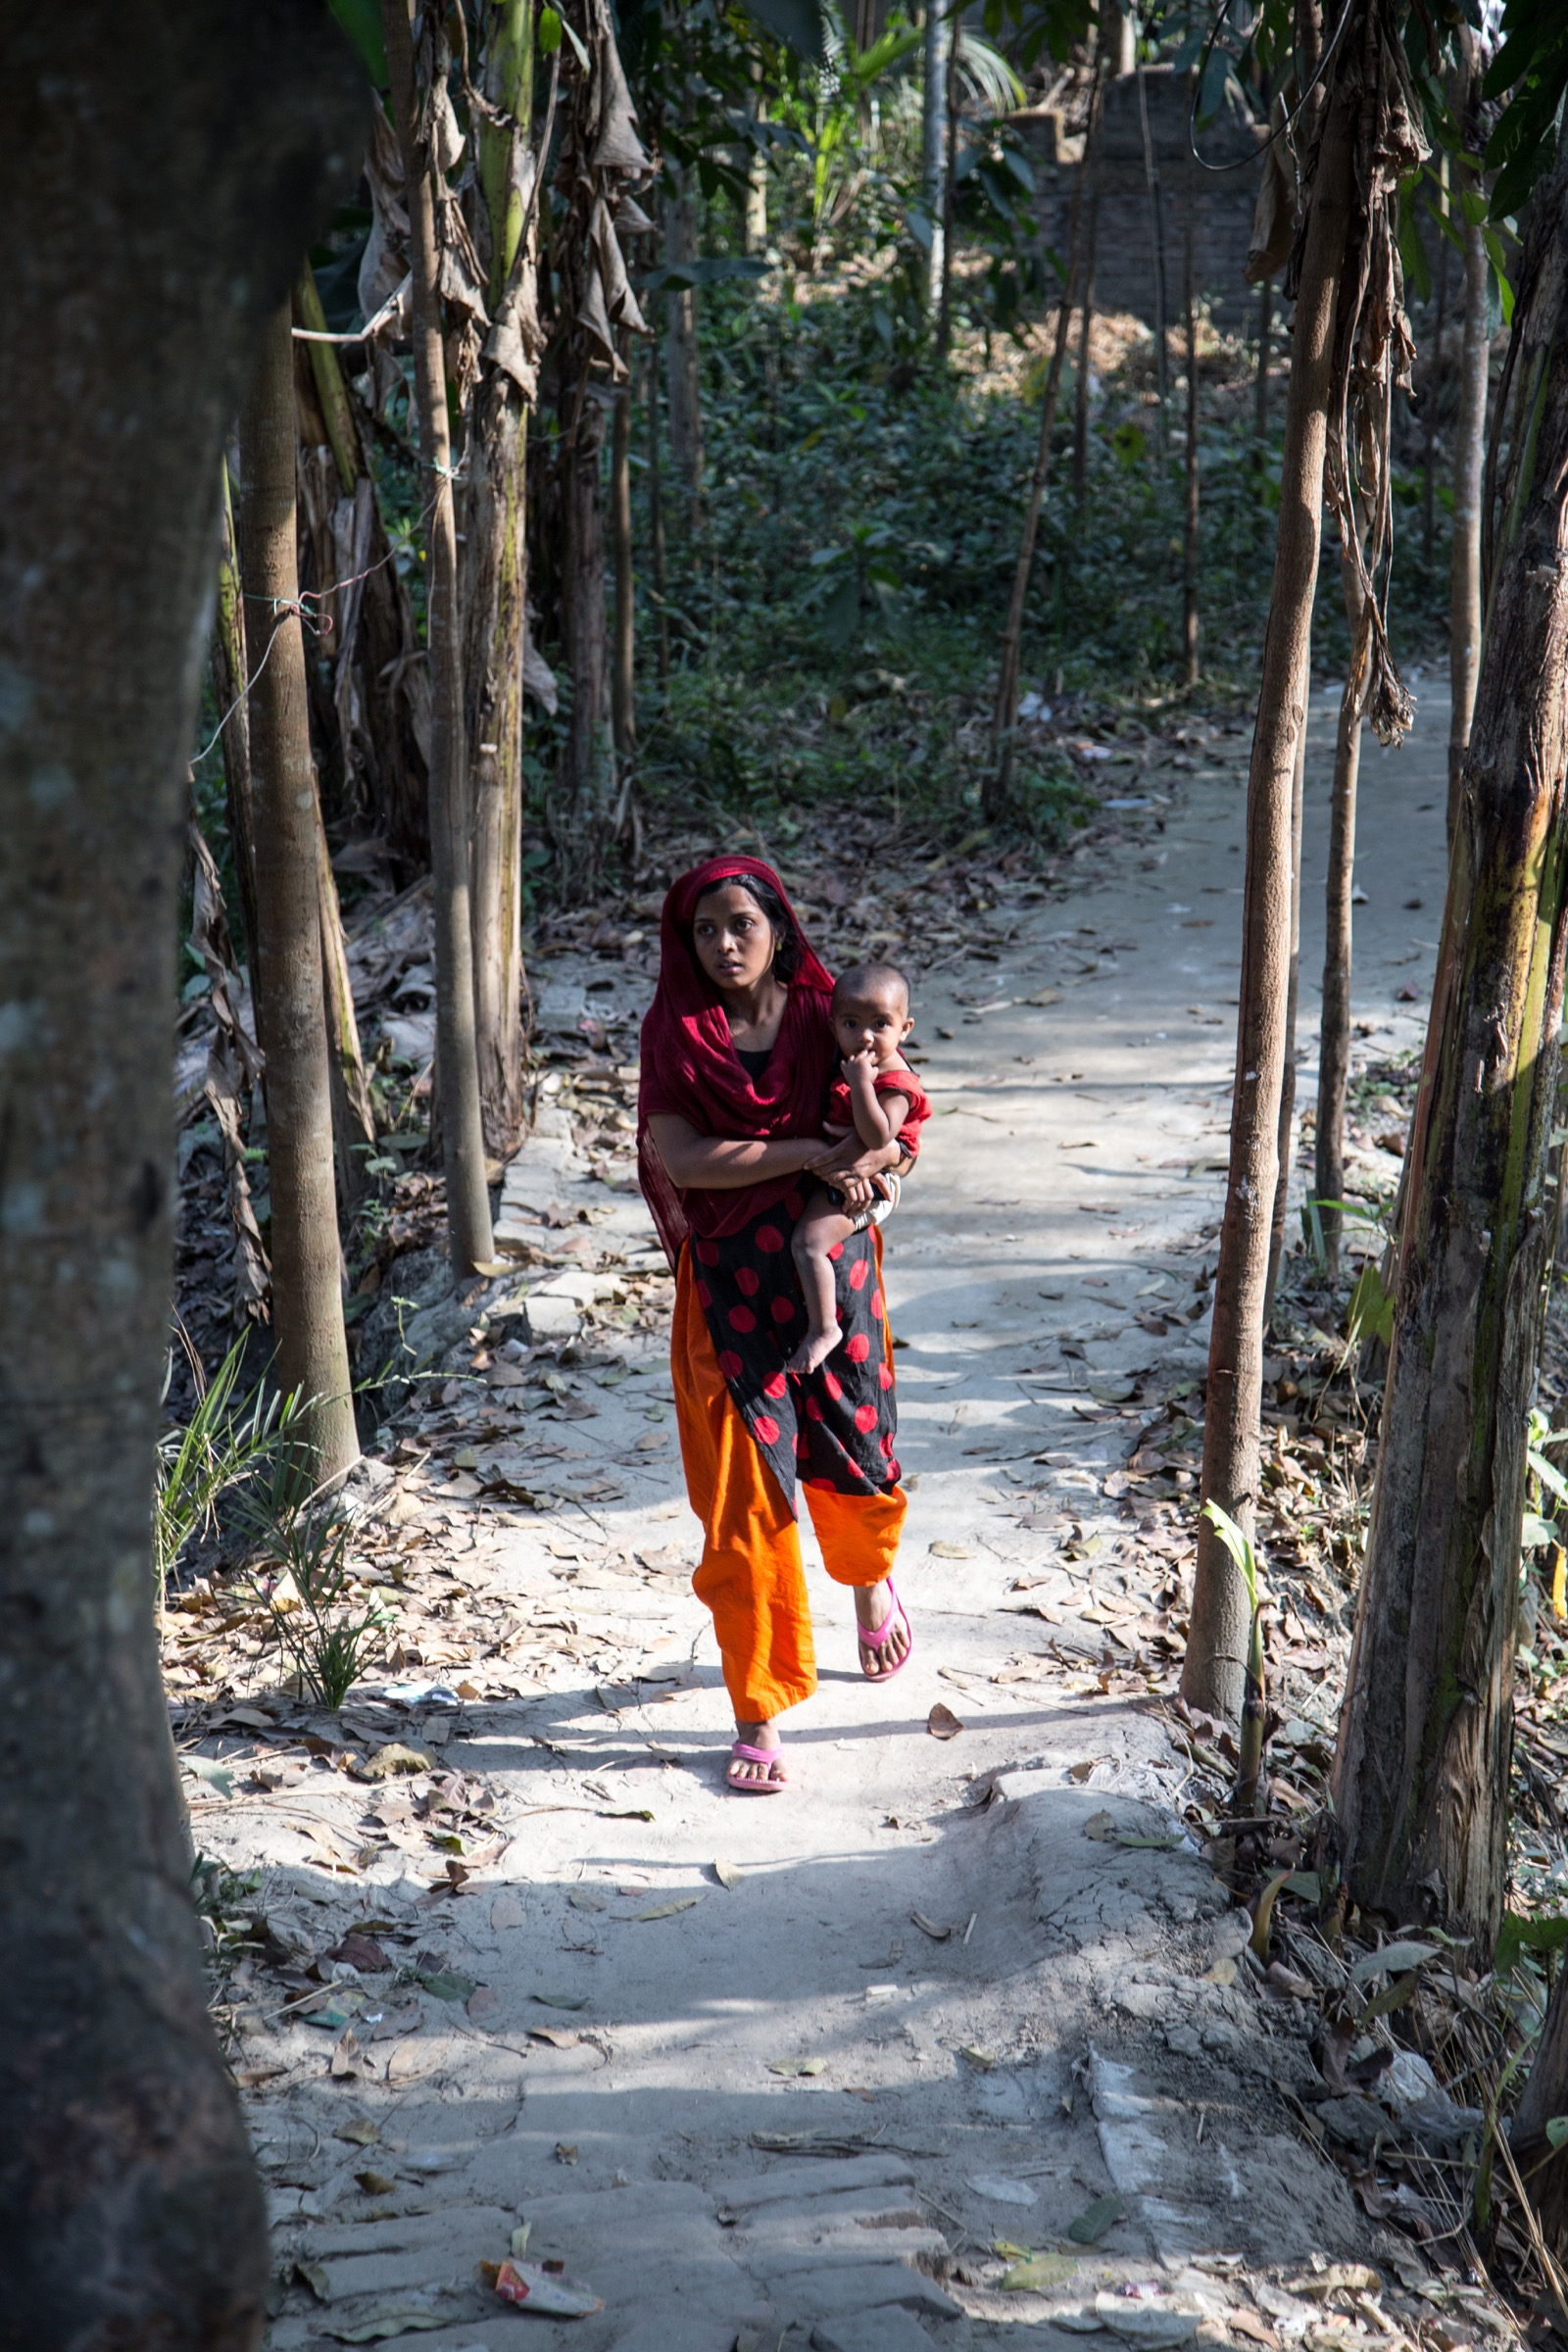 Hossain M. S. Sazzad and his team at ICDDR,B have learned the value of slow and steady trust-building in their efforts to prevent future Nipah outbreaks. Frequently, the only way to access remote villages is on foot, along narrow paths like this one. Photograph by Steven Bedard